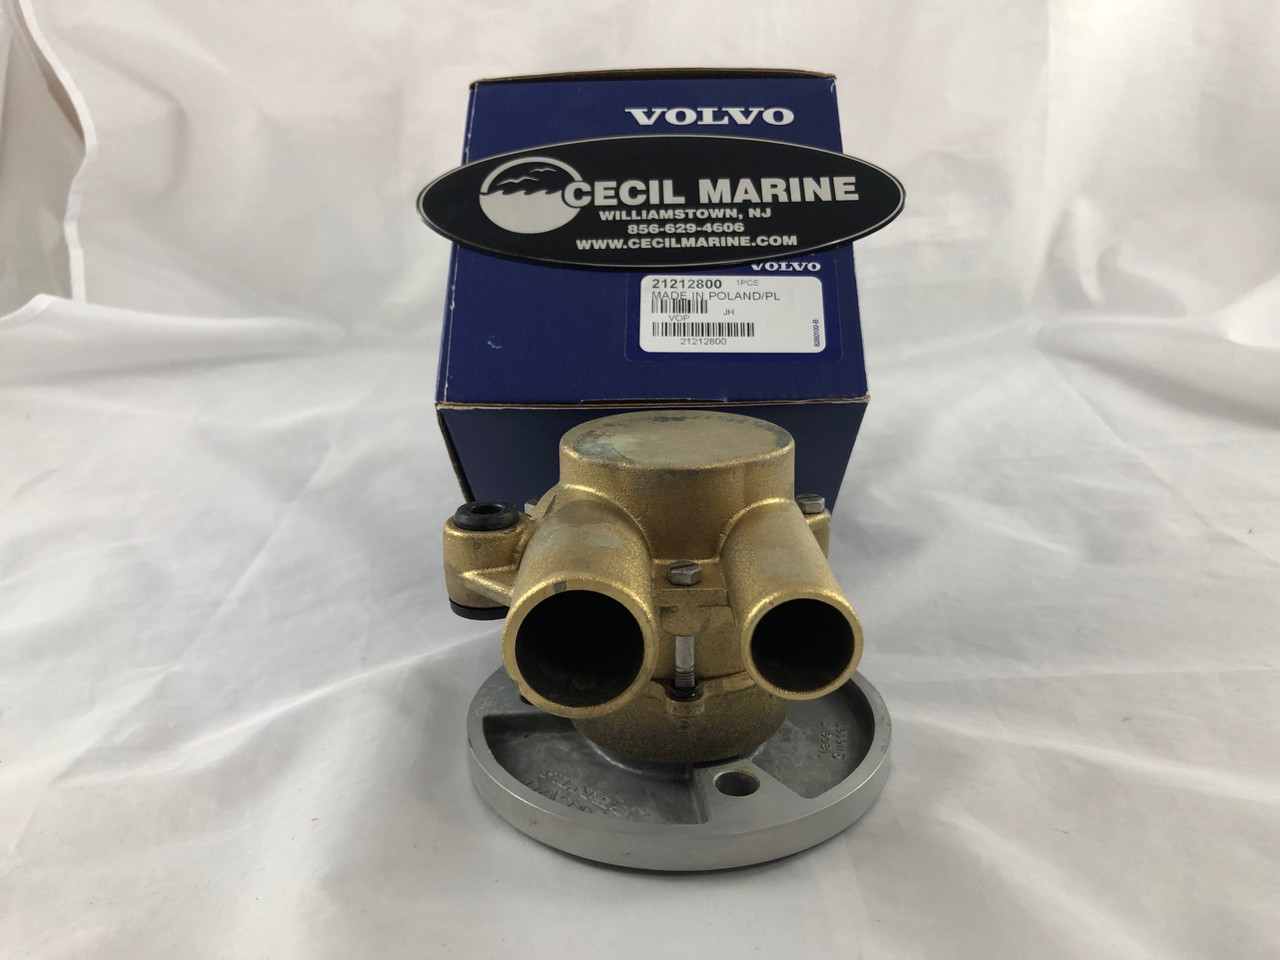 $329.95* GENUINE VOLVO  SEA WATER PUMP  21212800 ** IN STOCK & READY TO SHIP! **